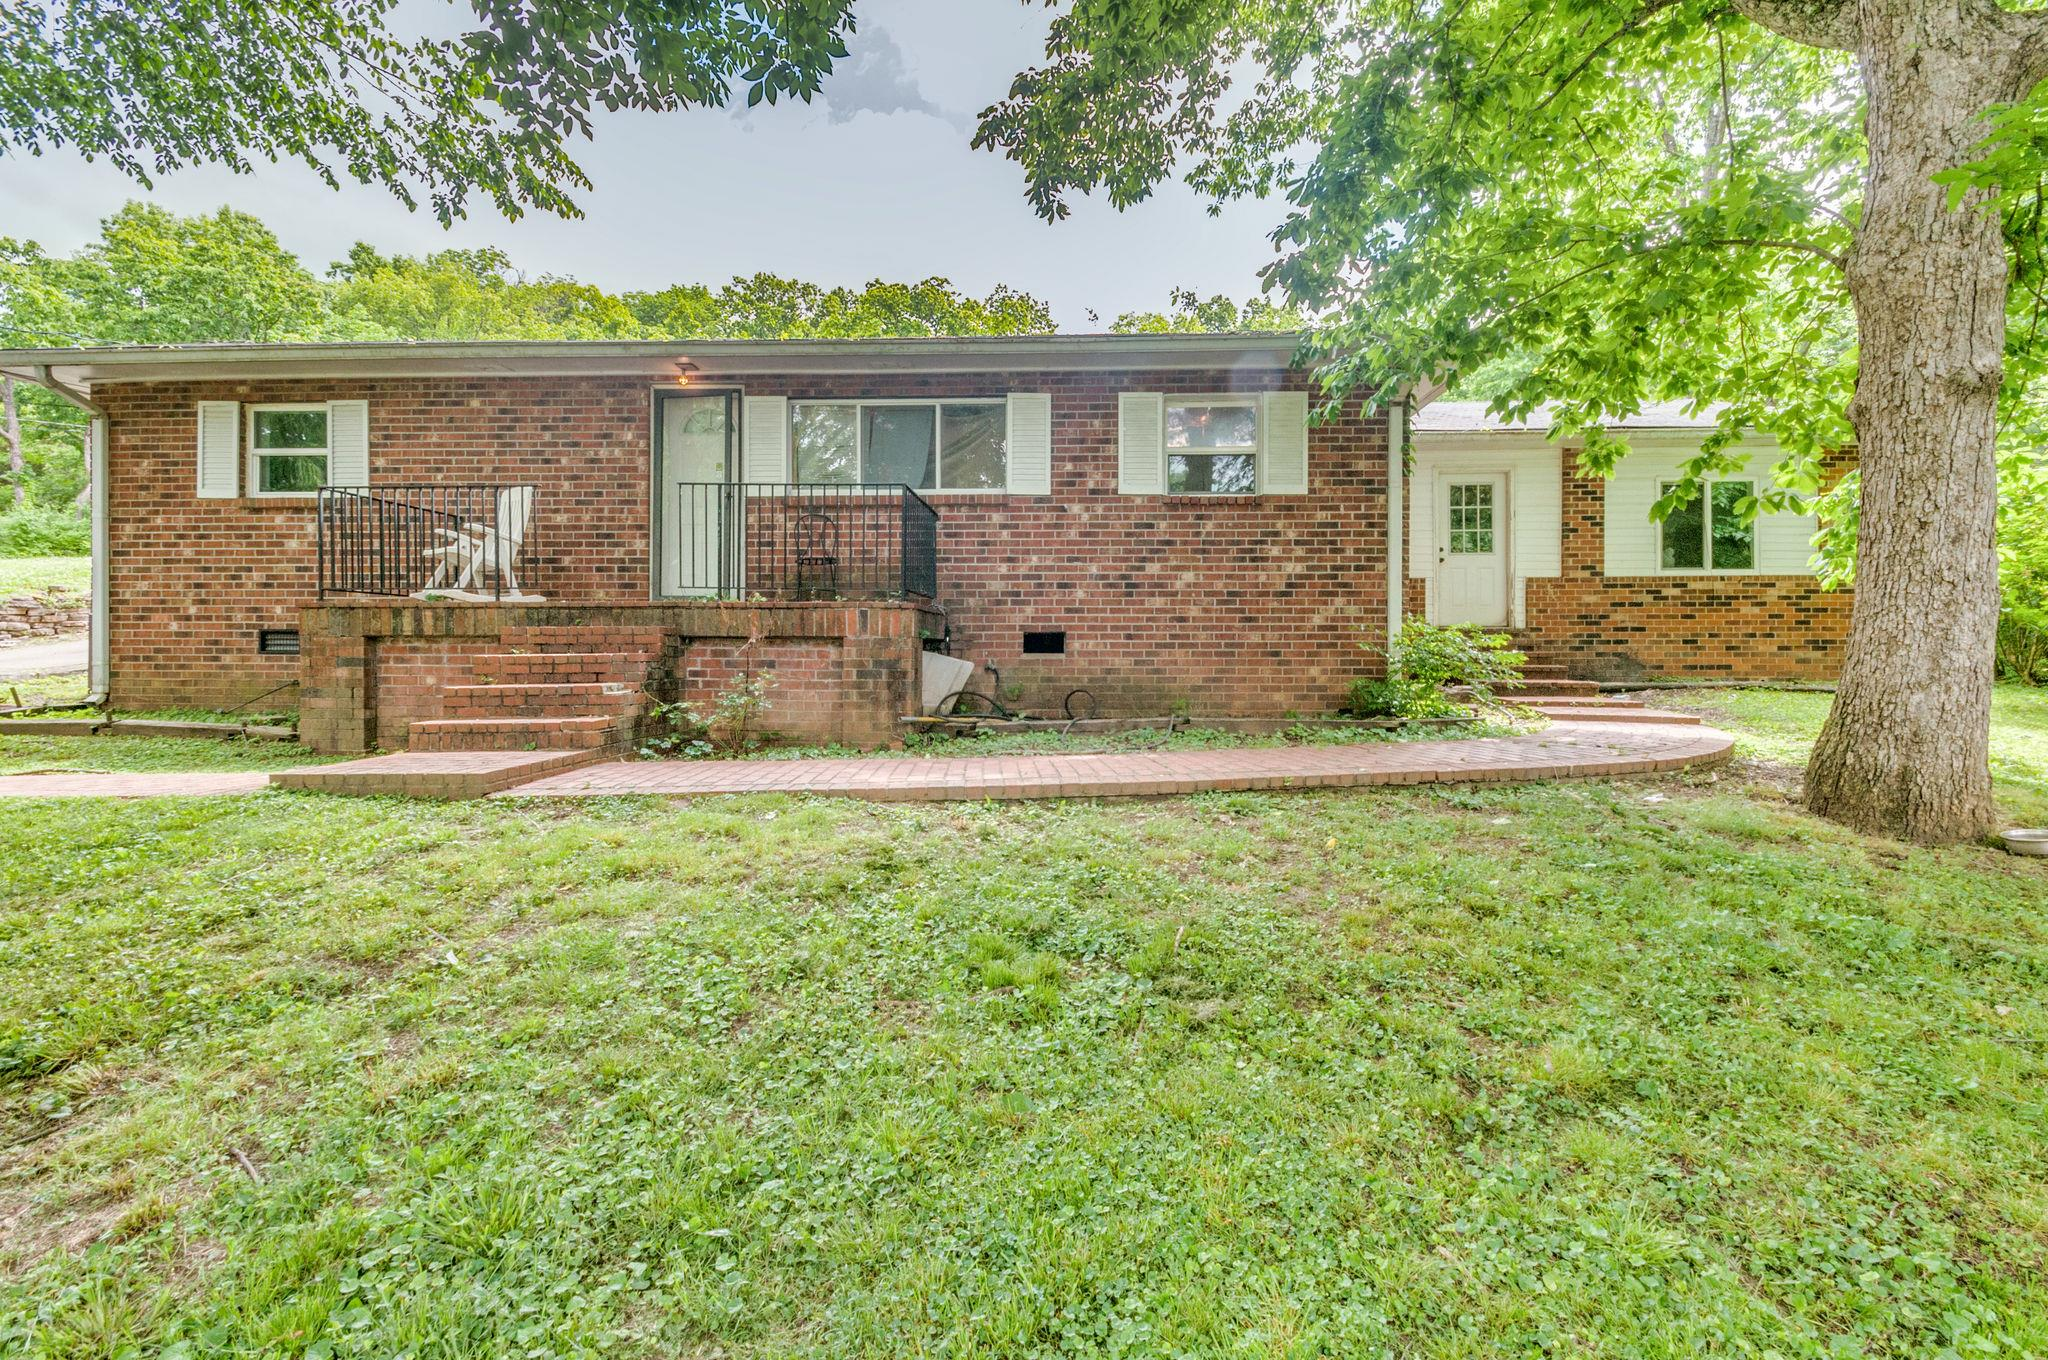 2374 Una Antioch Pike, Nashville-Antioch in Davidson County County, TN 37013 Home for Sale